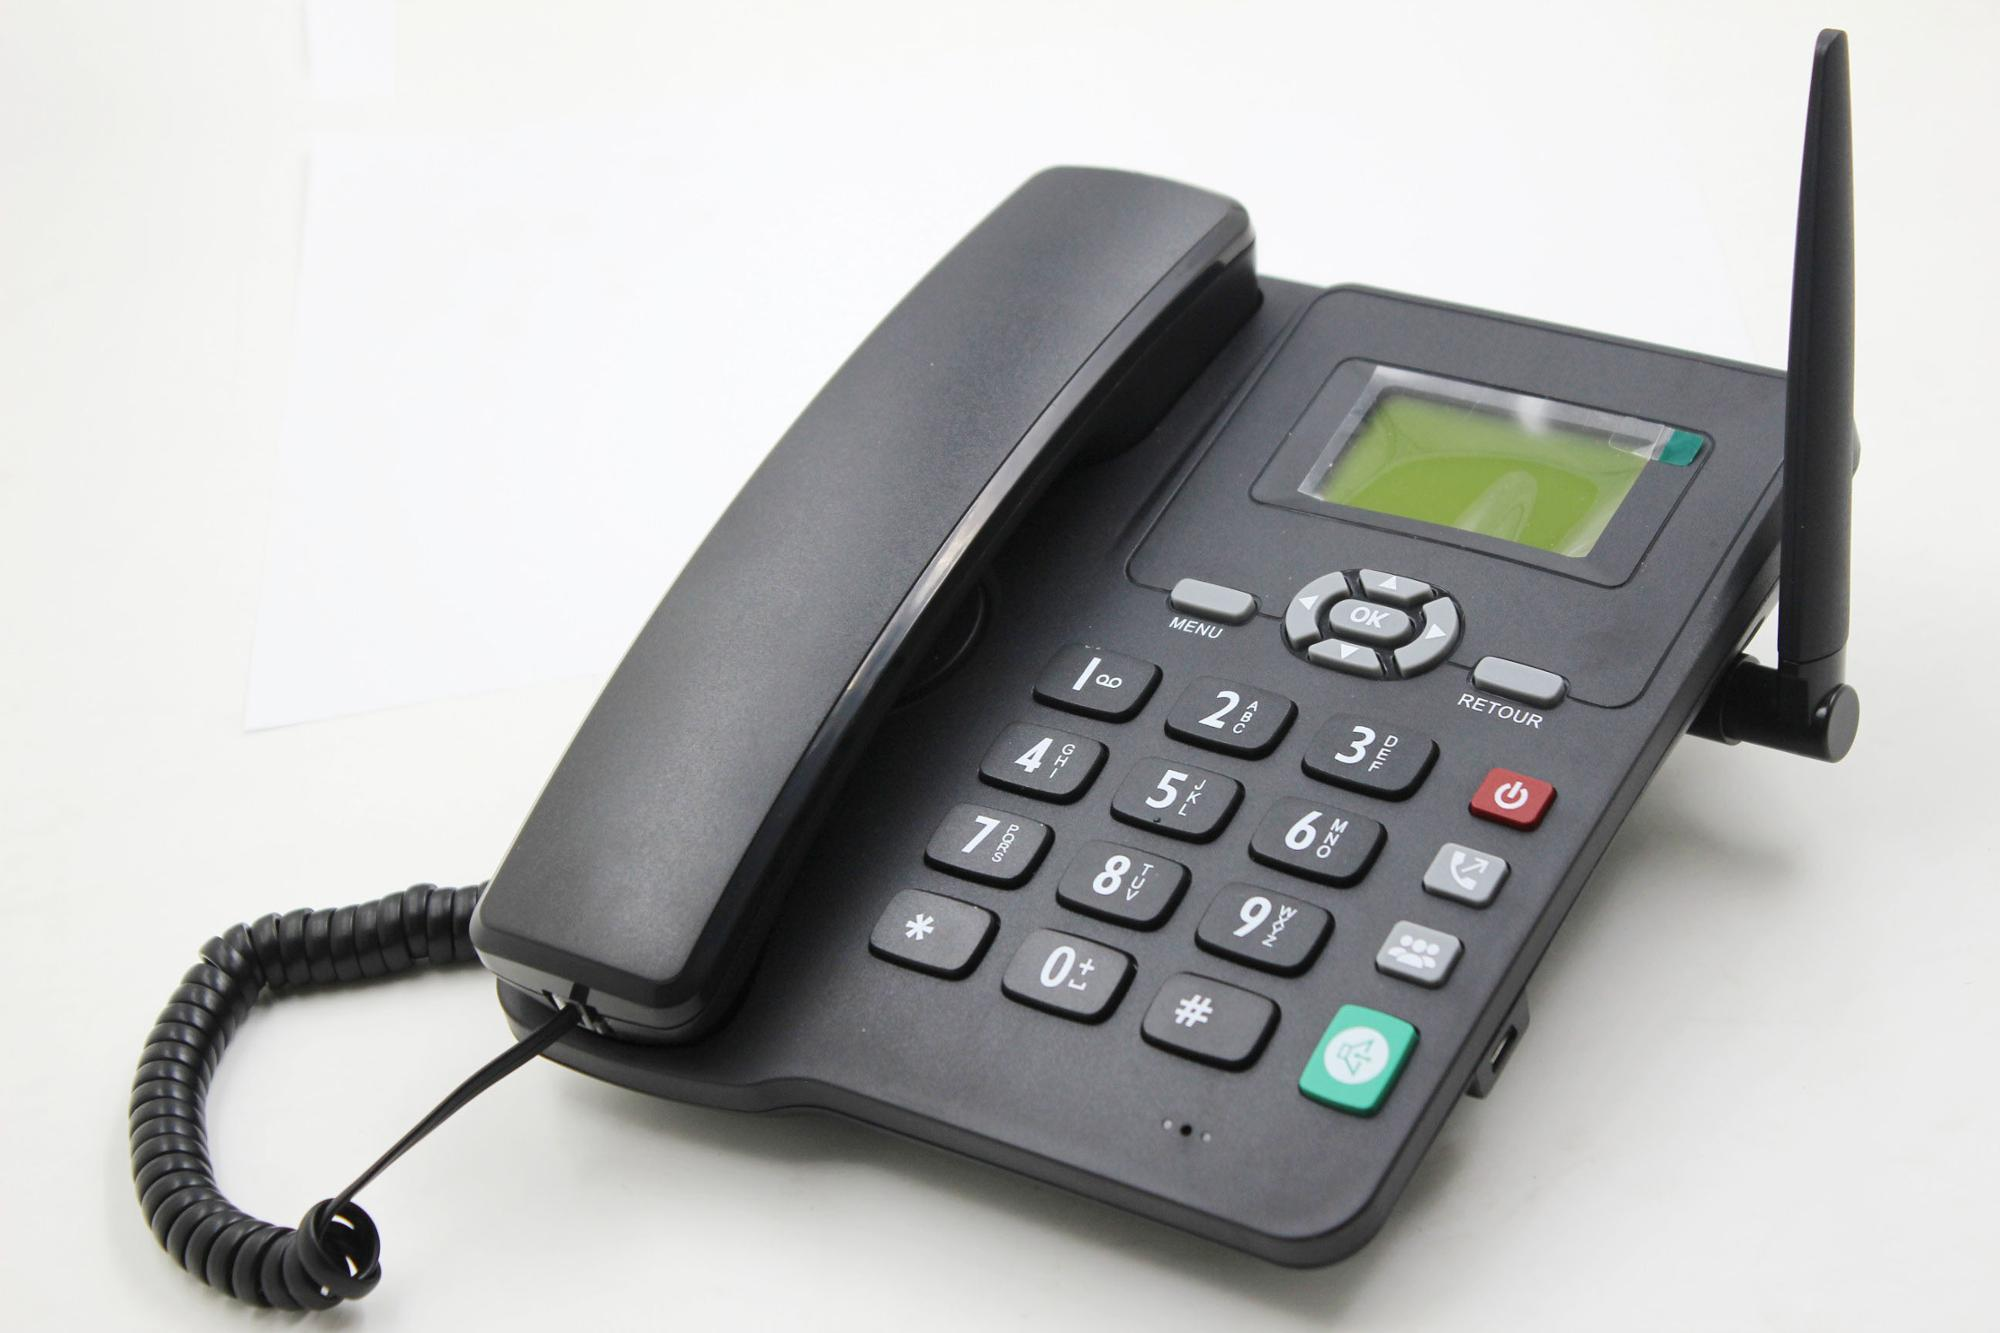 Chenfenghao Wholesale One Piece 2G & 4G GSM Caller Idcordedhometelephone